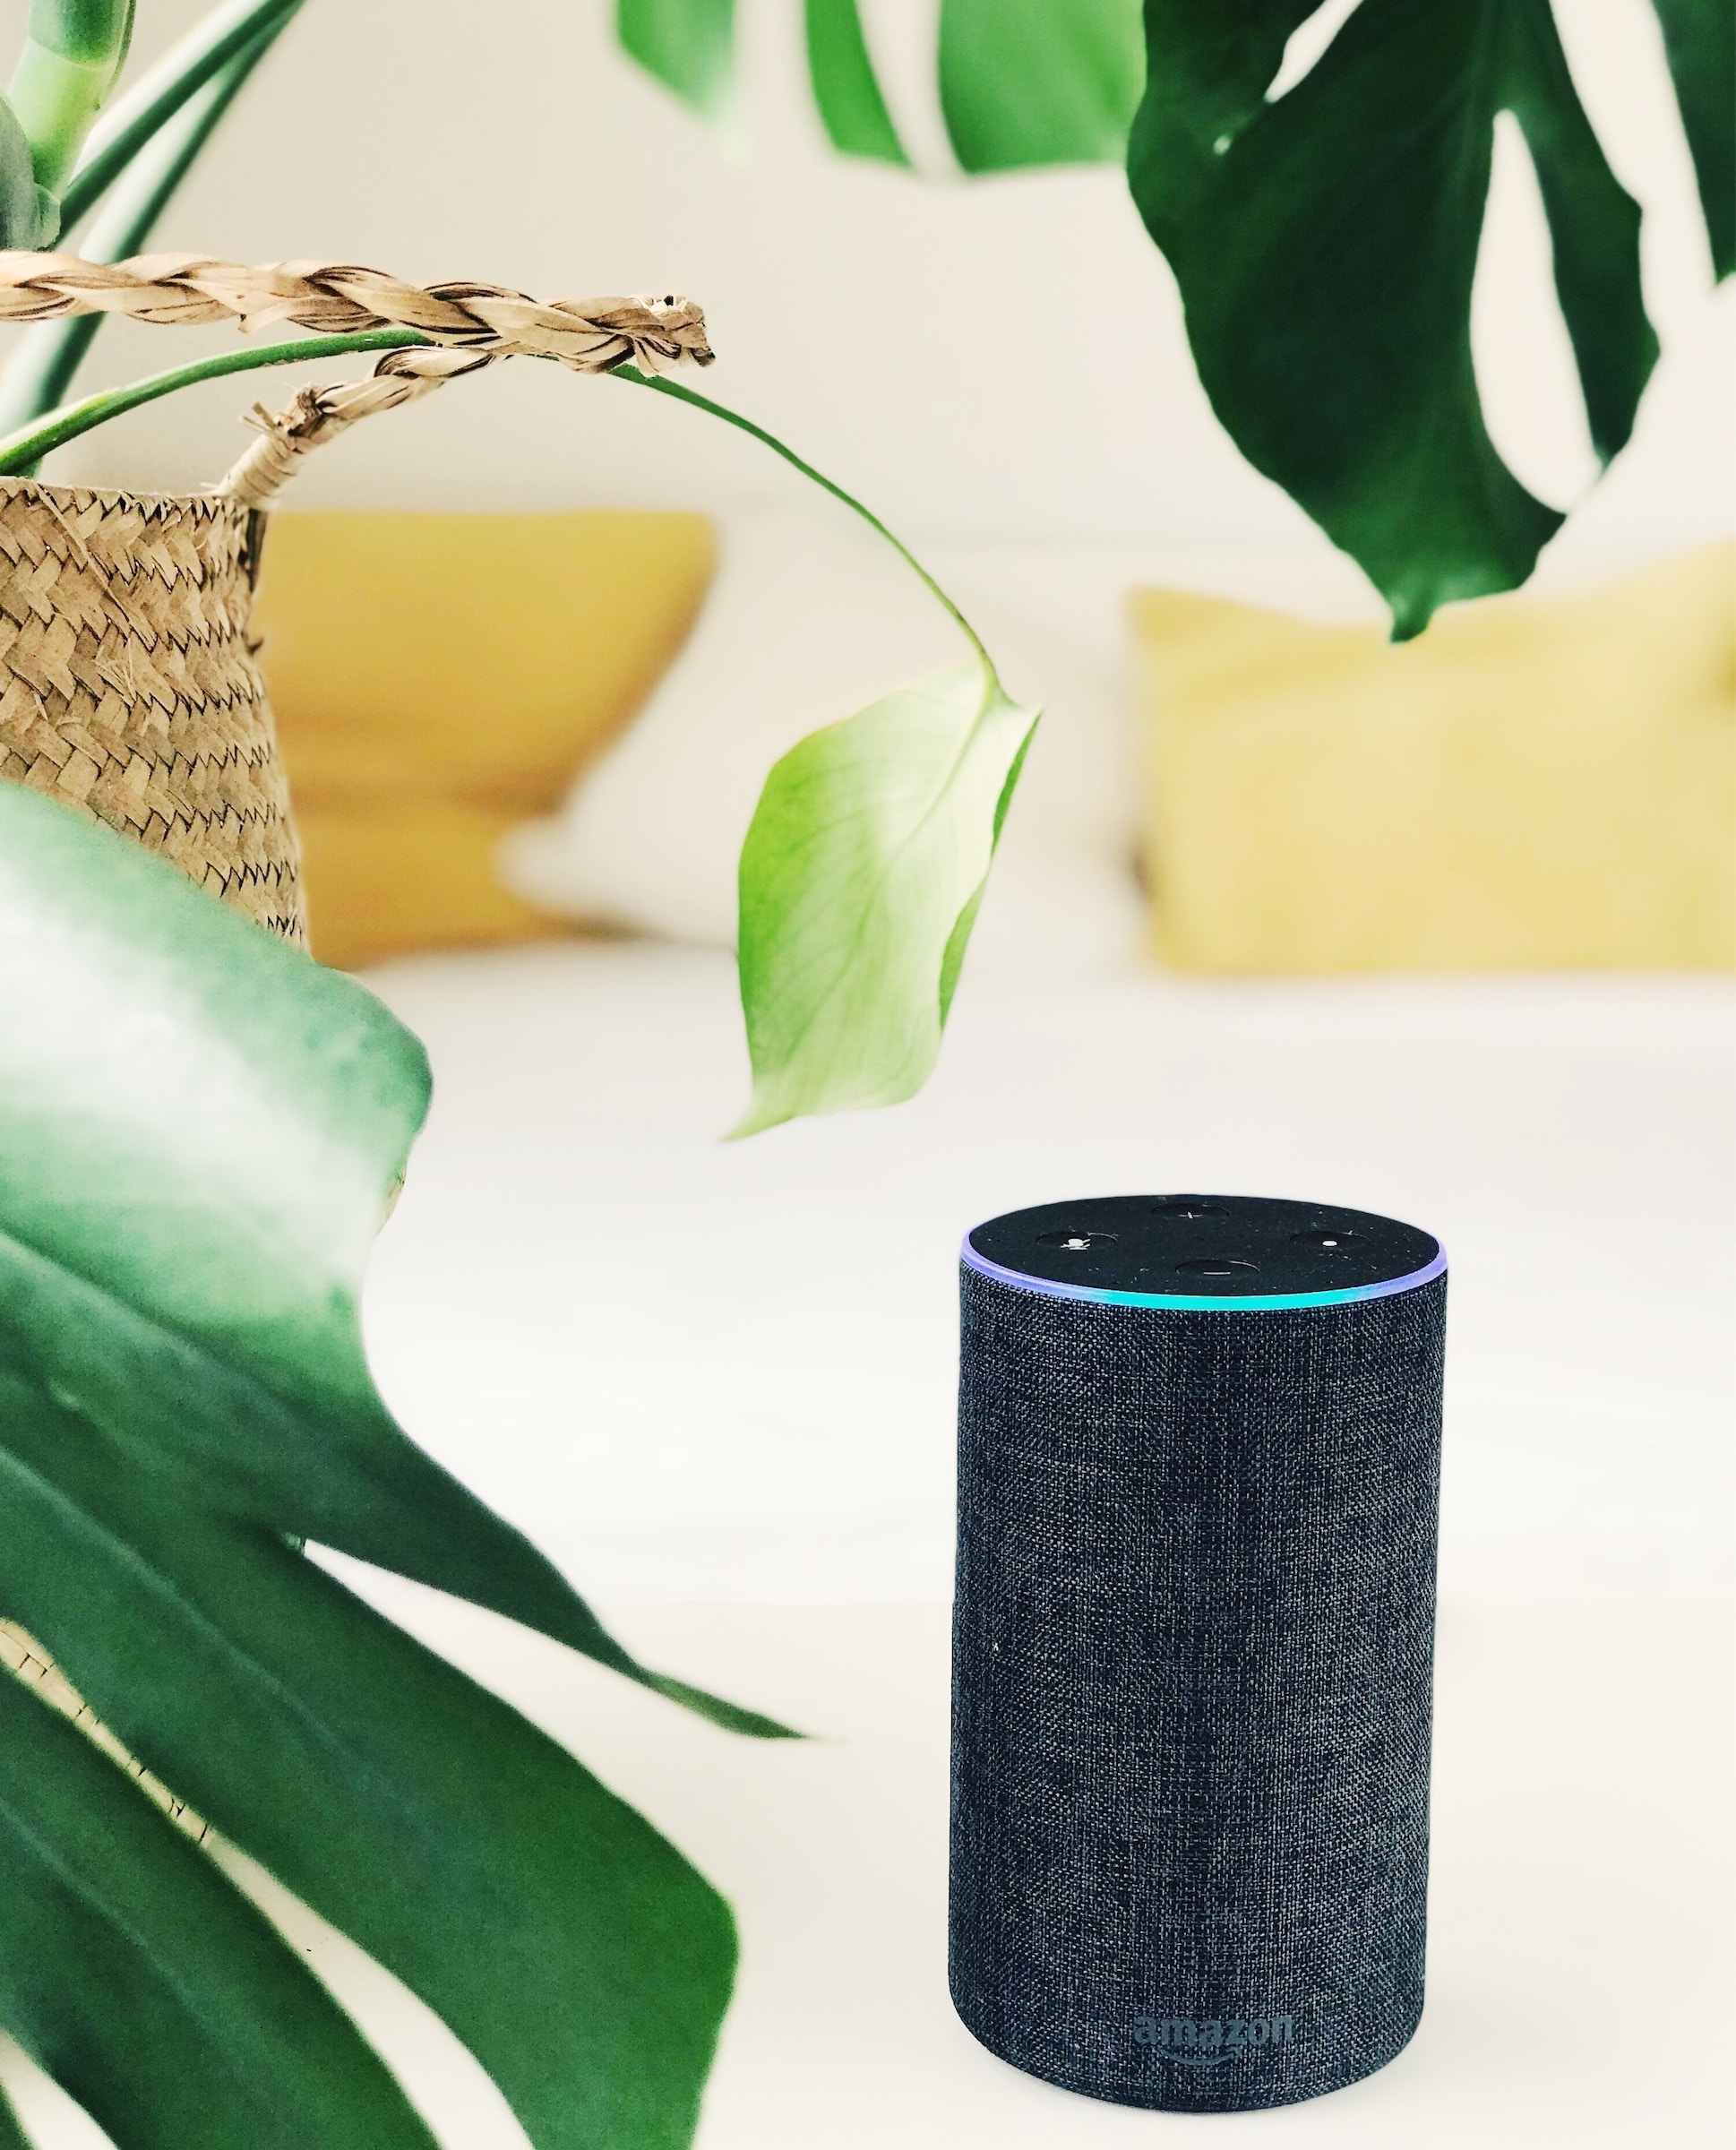 Amazon Alexa comes programmed with fun party games!